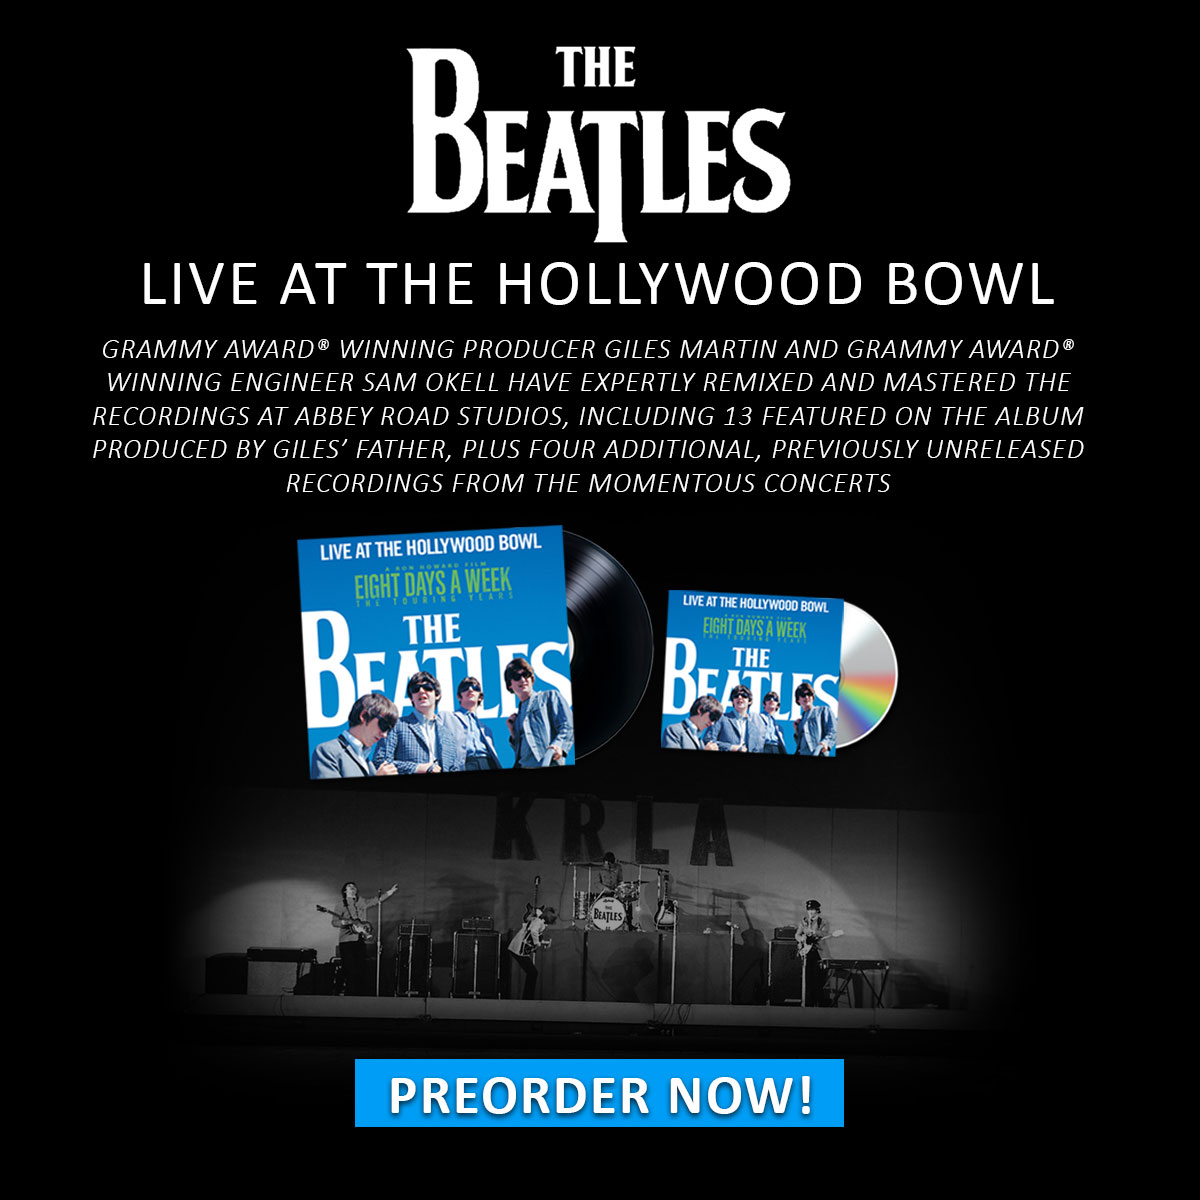 The Beatles Live At The Hollywood Bowl. A new album featuring 13 original tracks and 4 new bonus tracks. Pre-Order Now.